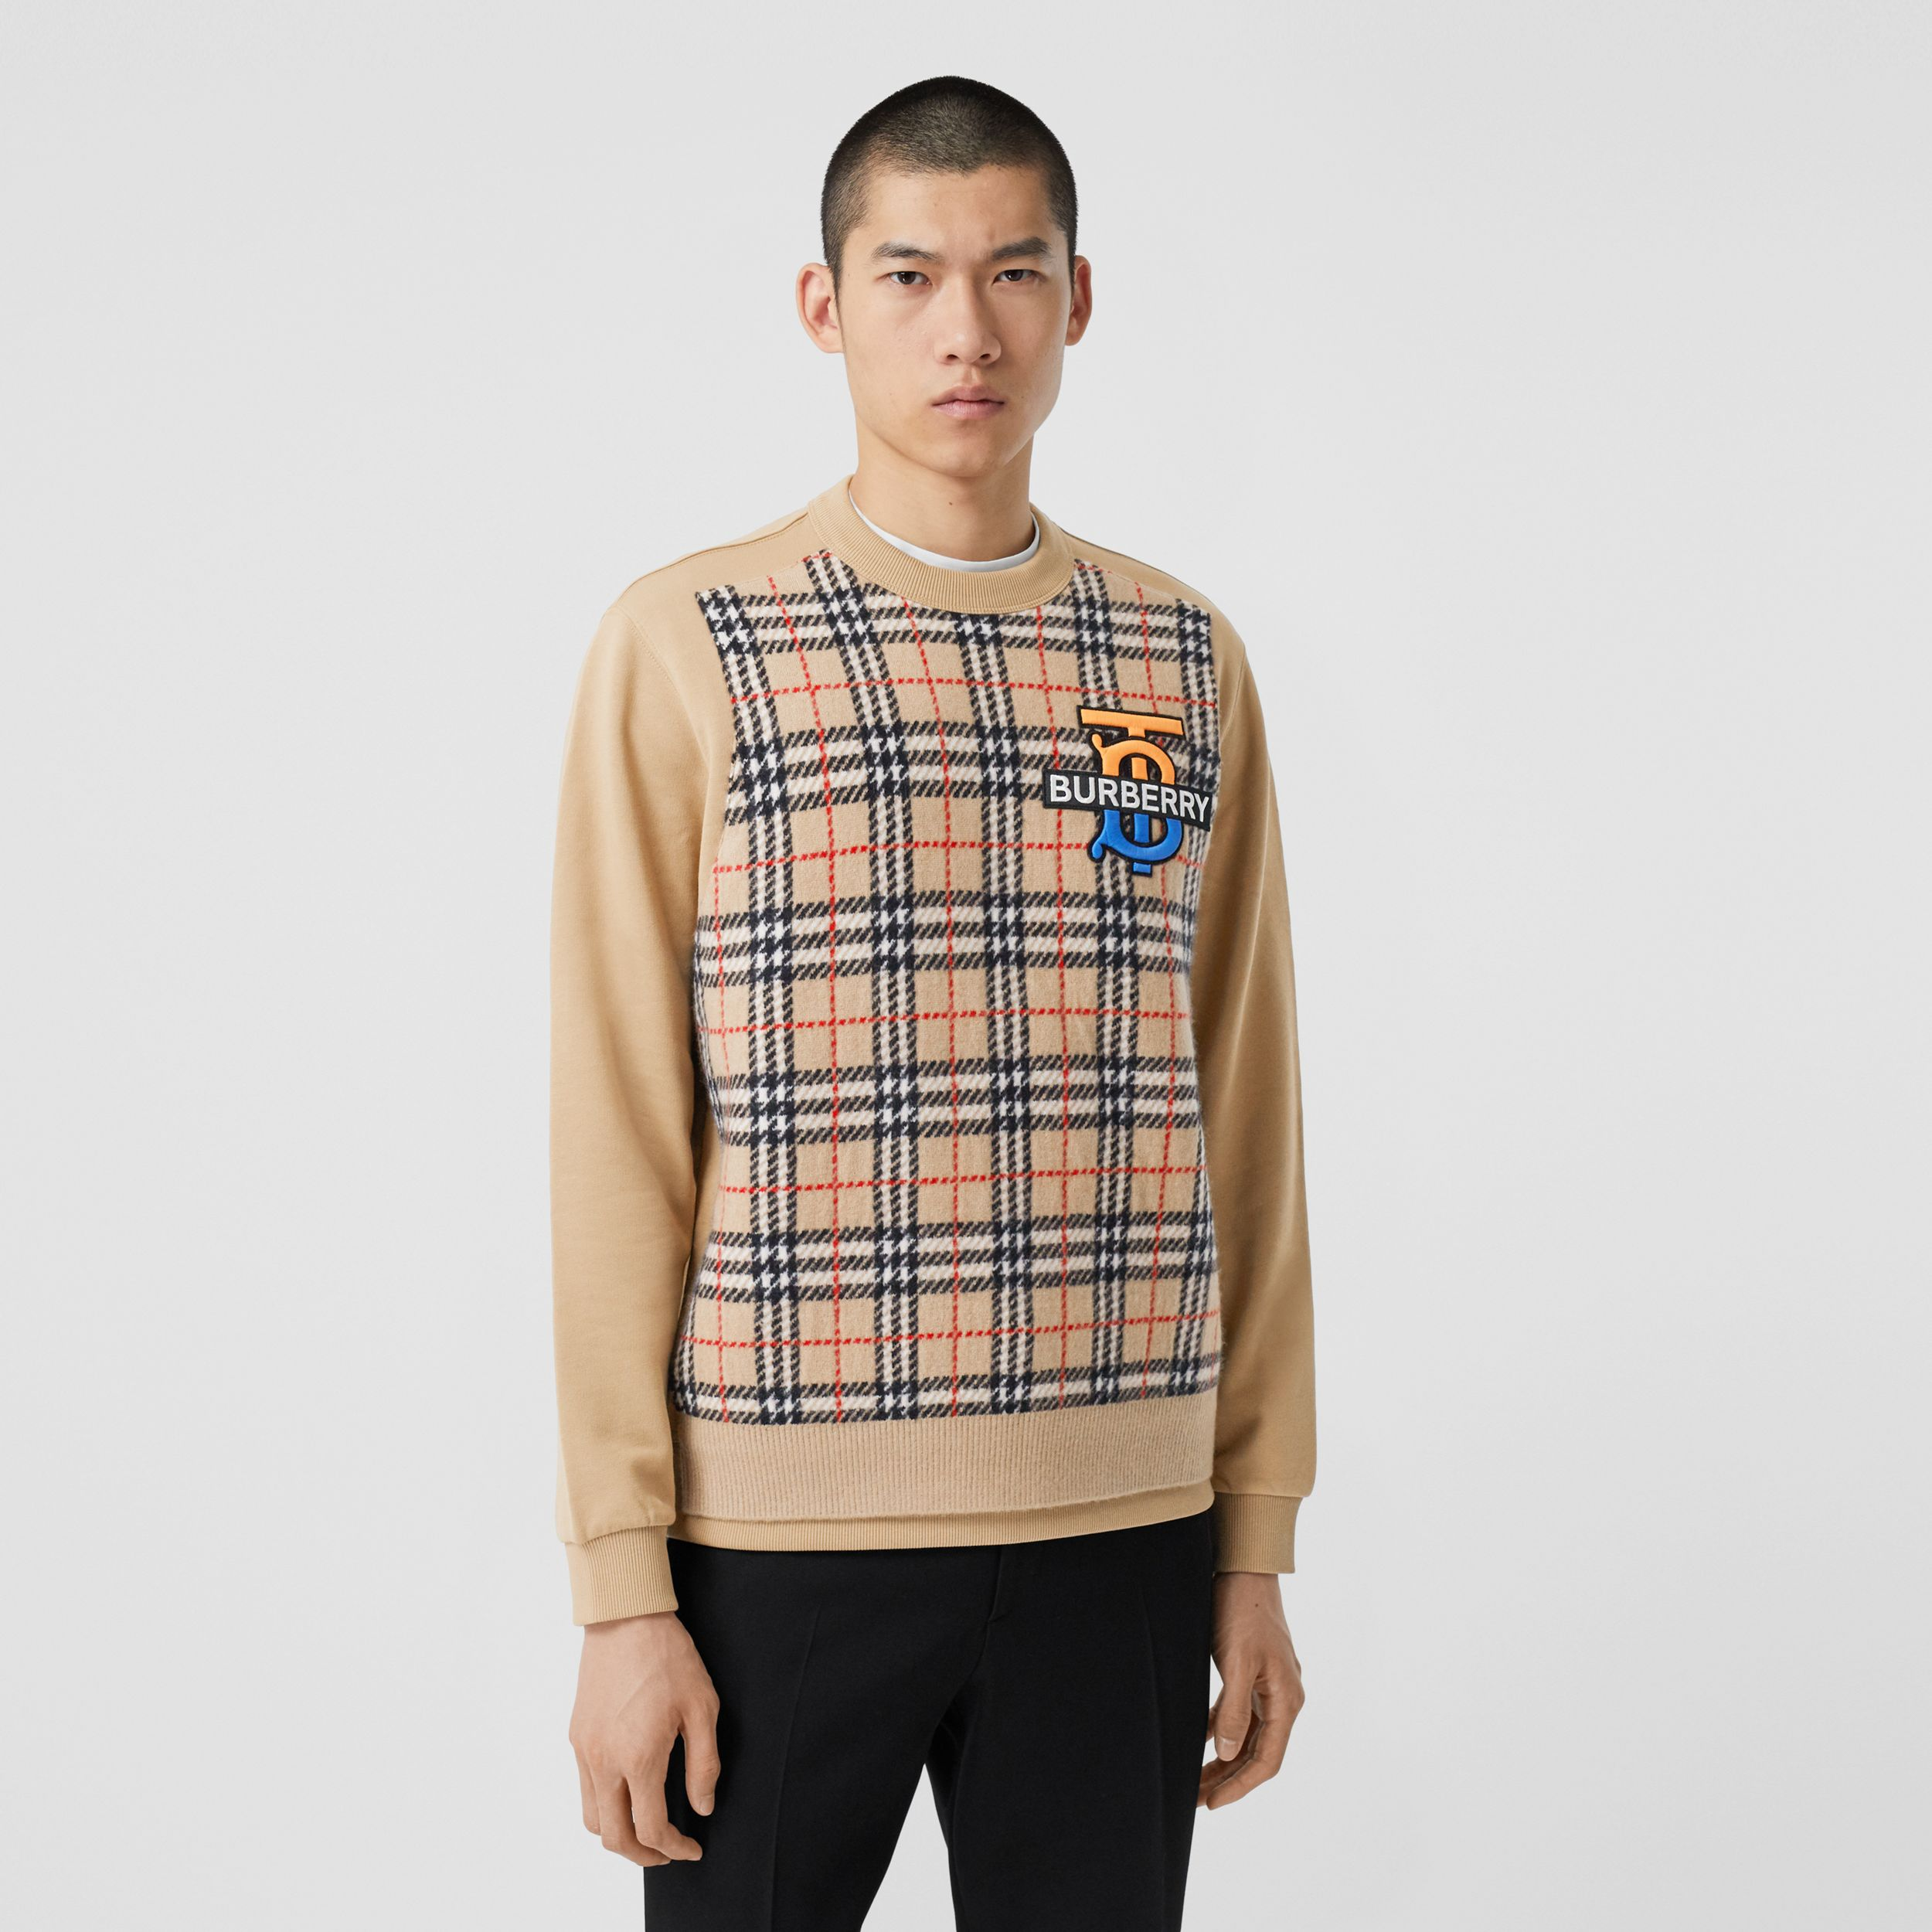 Monogram Motif Check Cashmere Panel Sweatshirt in Archive Beige - Men | Burberry - 1